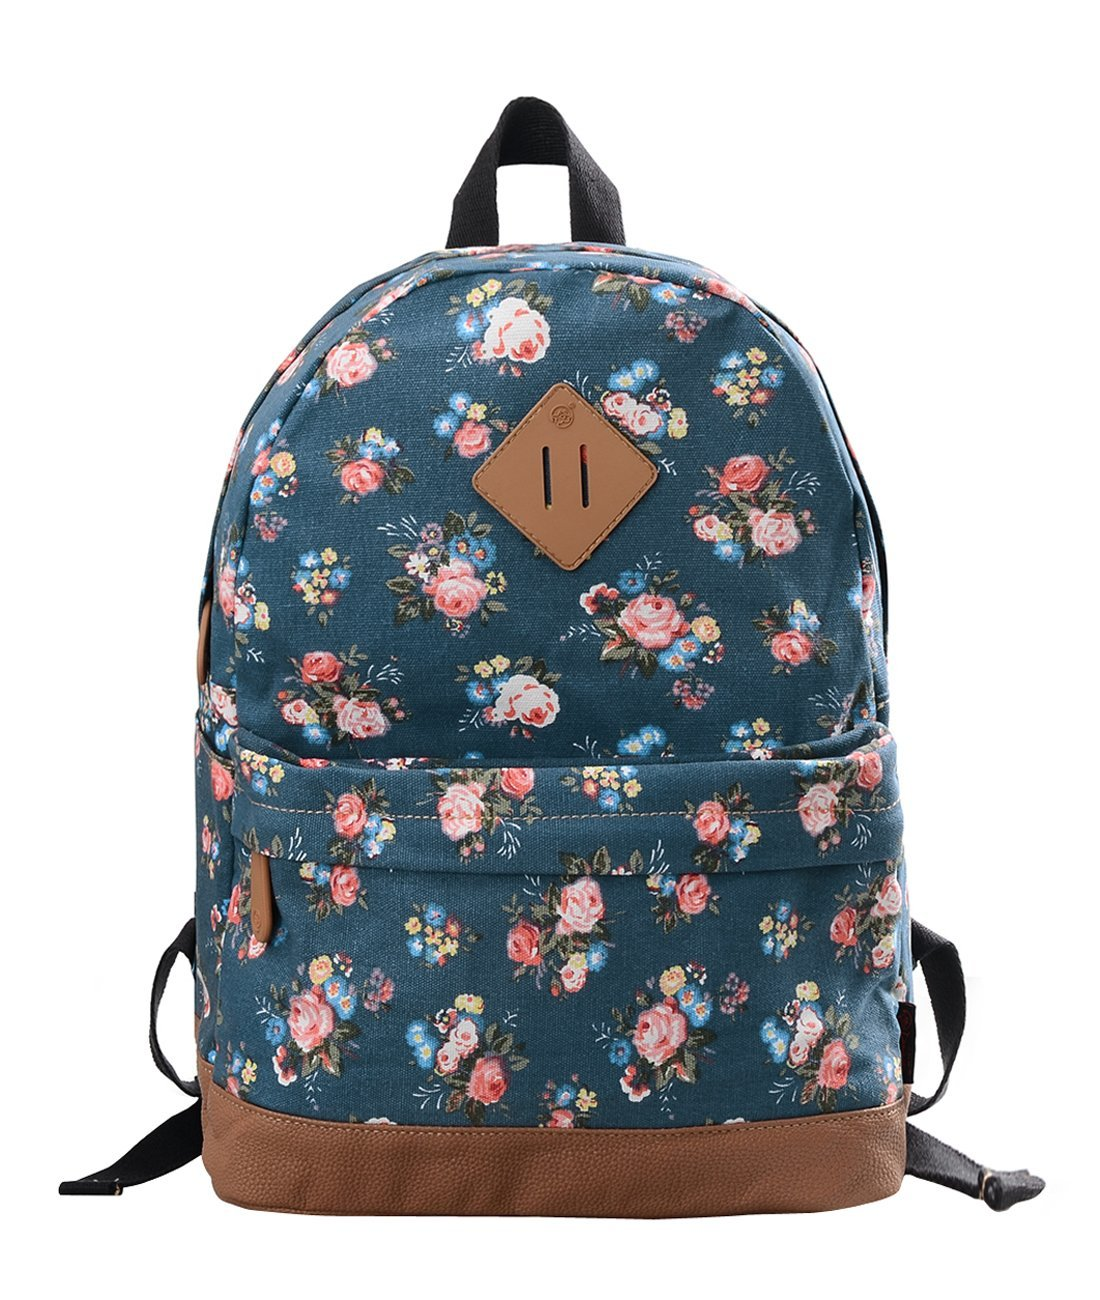 Douguyan Women's and Girl's Backpack Canvas Toddler Backpack School Bags Casual Daypacks Toddler Backpack E00133 Black Peony